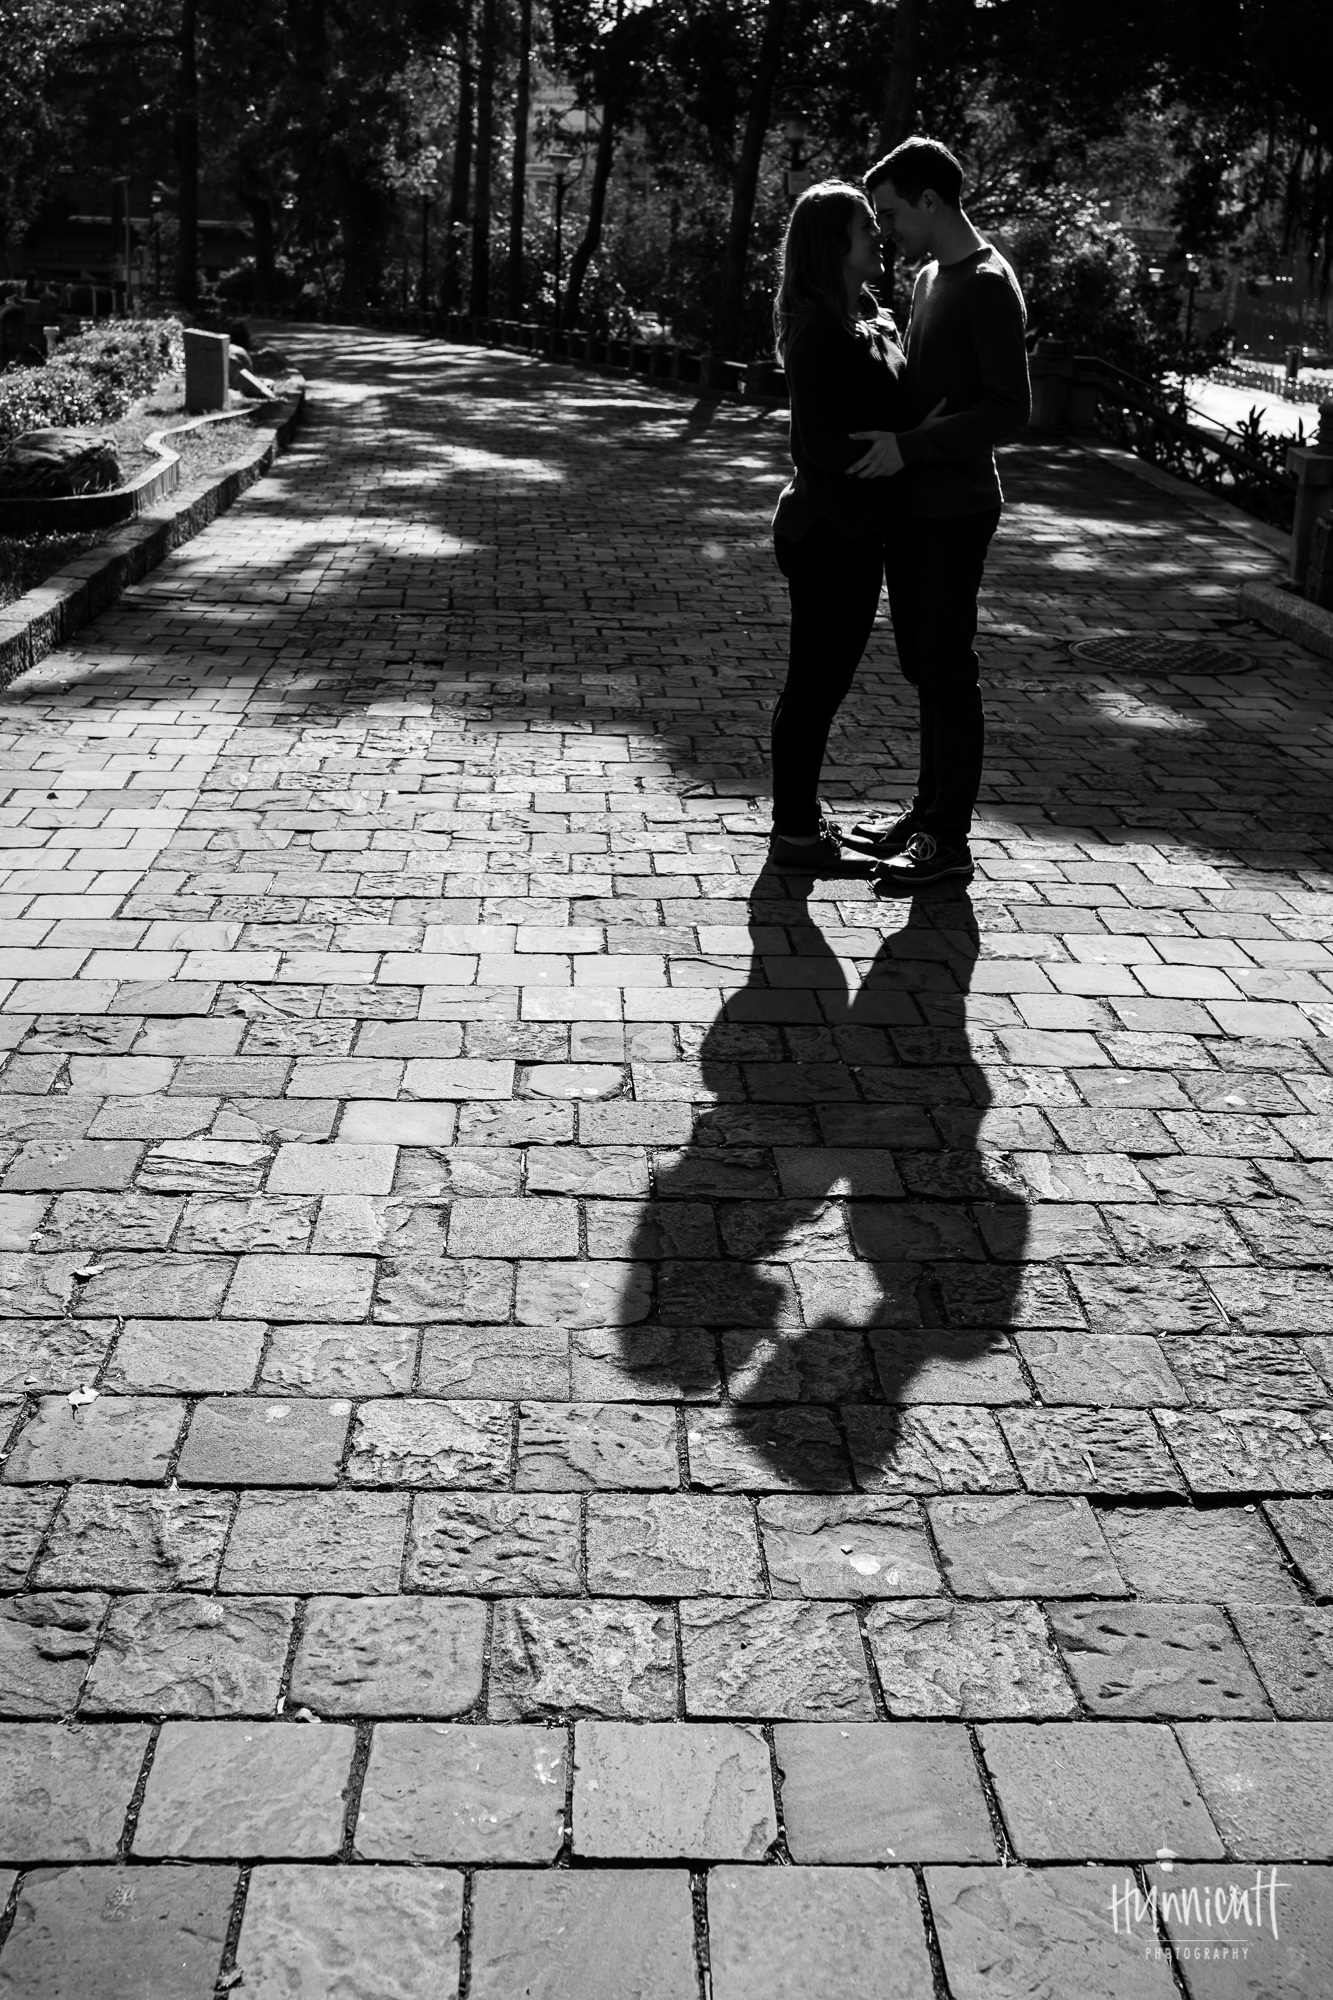 Outdoor-Cultural-Lifestyle-Couples-Photography-Taichung-Taiwan-Rebecca-Hunnicutt-Farren-Hunnicutt-Photography-Taichung-Park-22